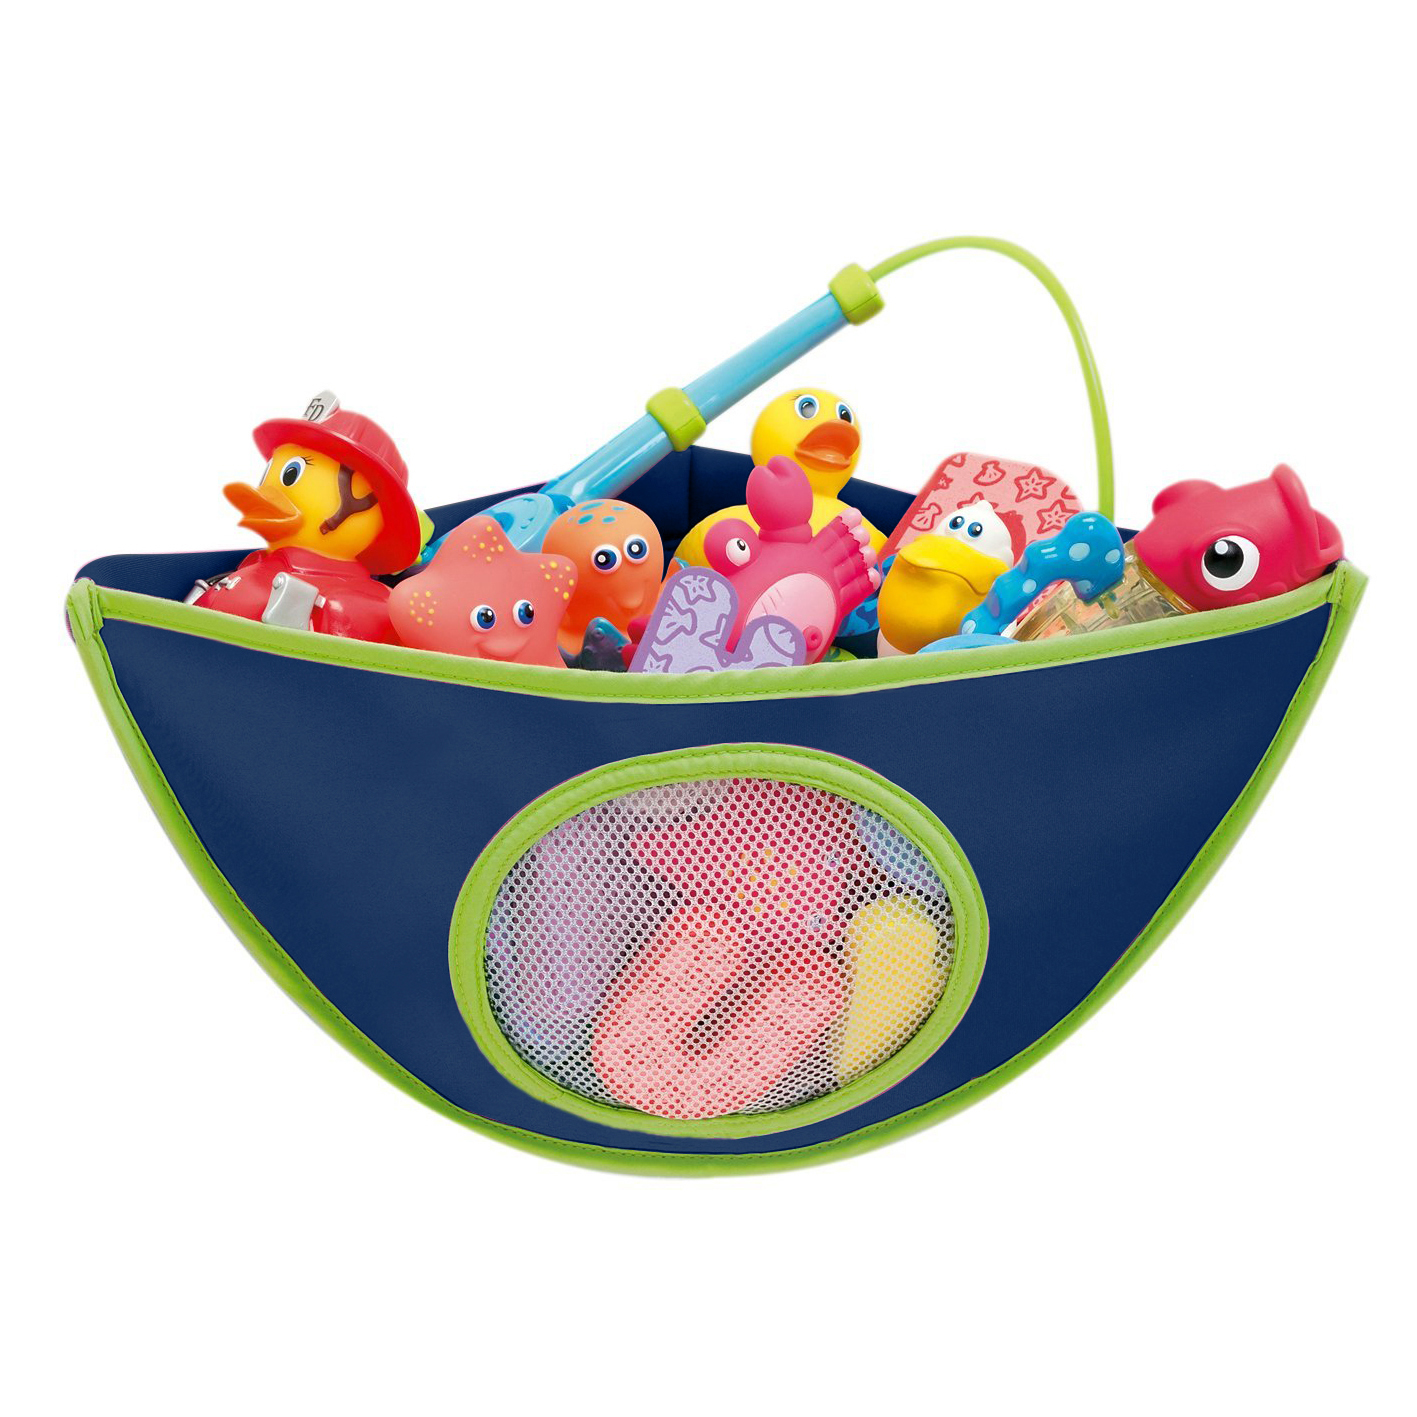 Corner Baby Bath Toy Organiser - Blue